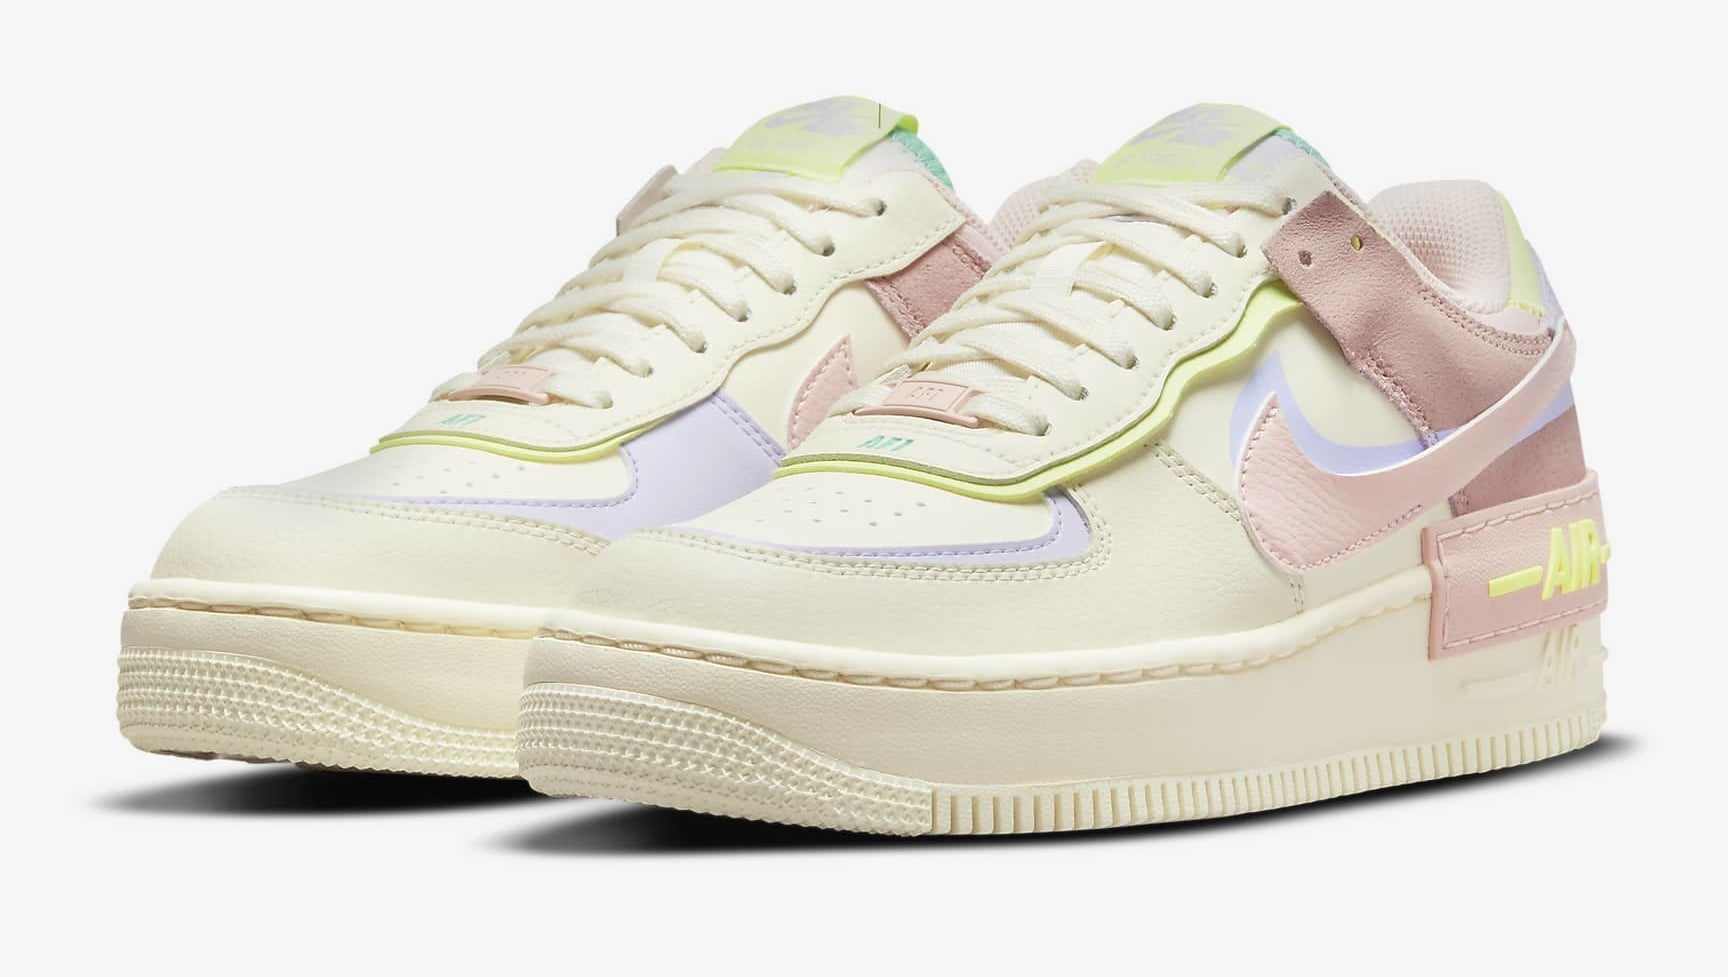 platform sneakers in cream with pink, yellow, and purple design features throughout